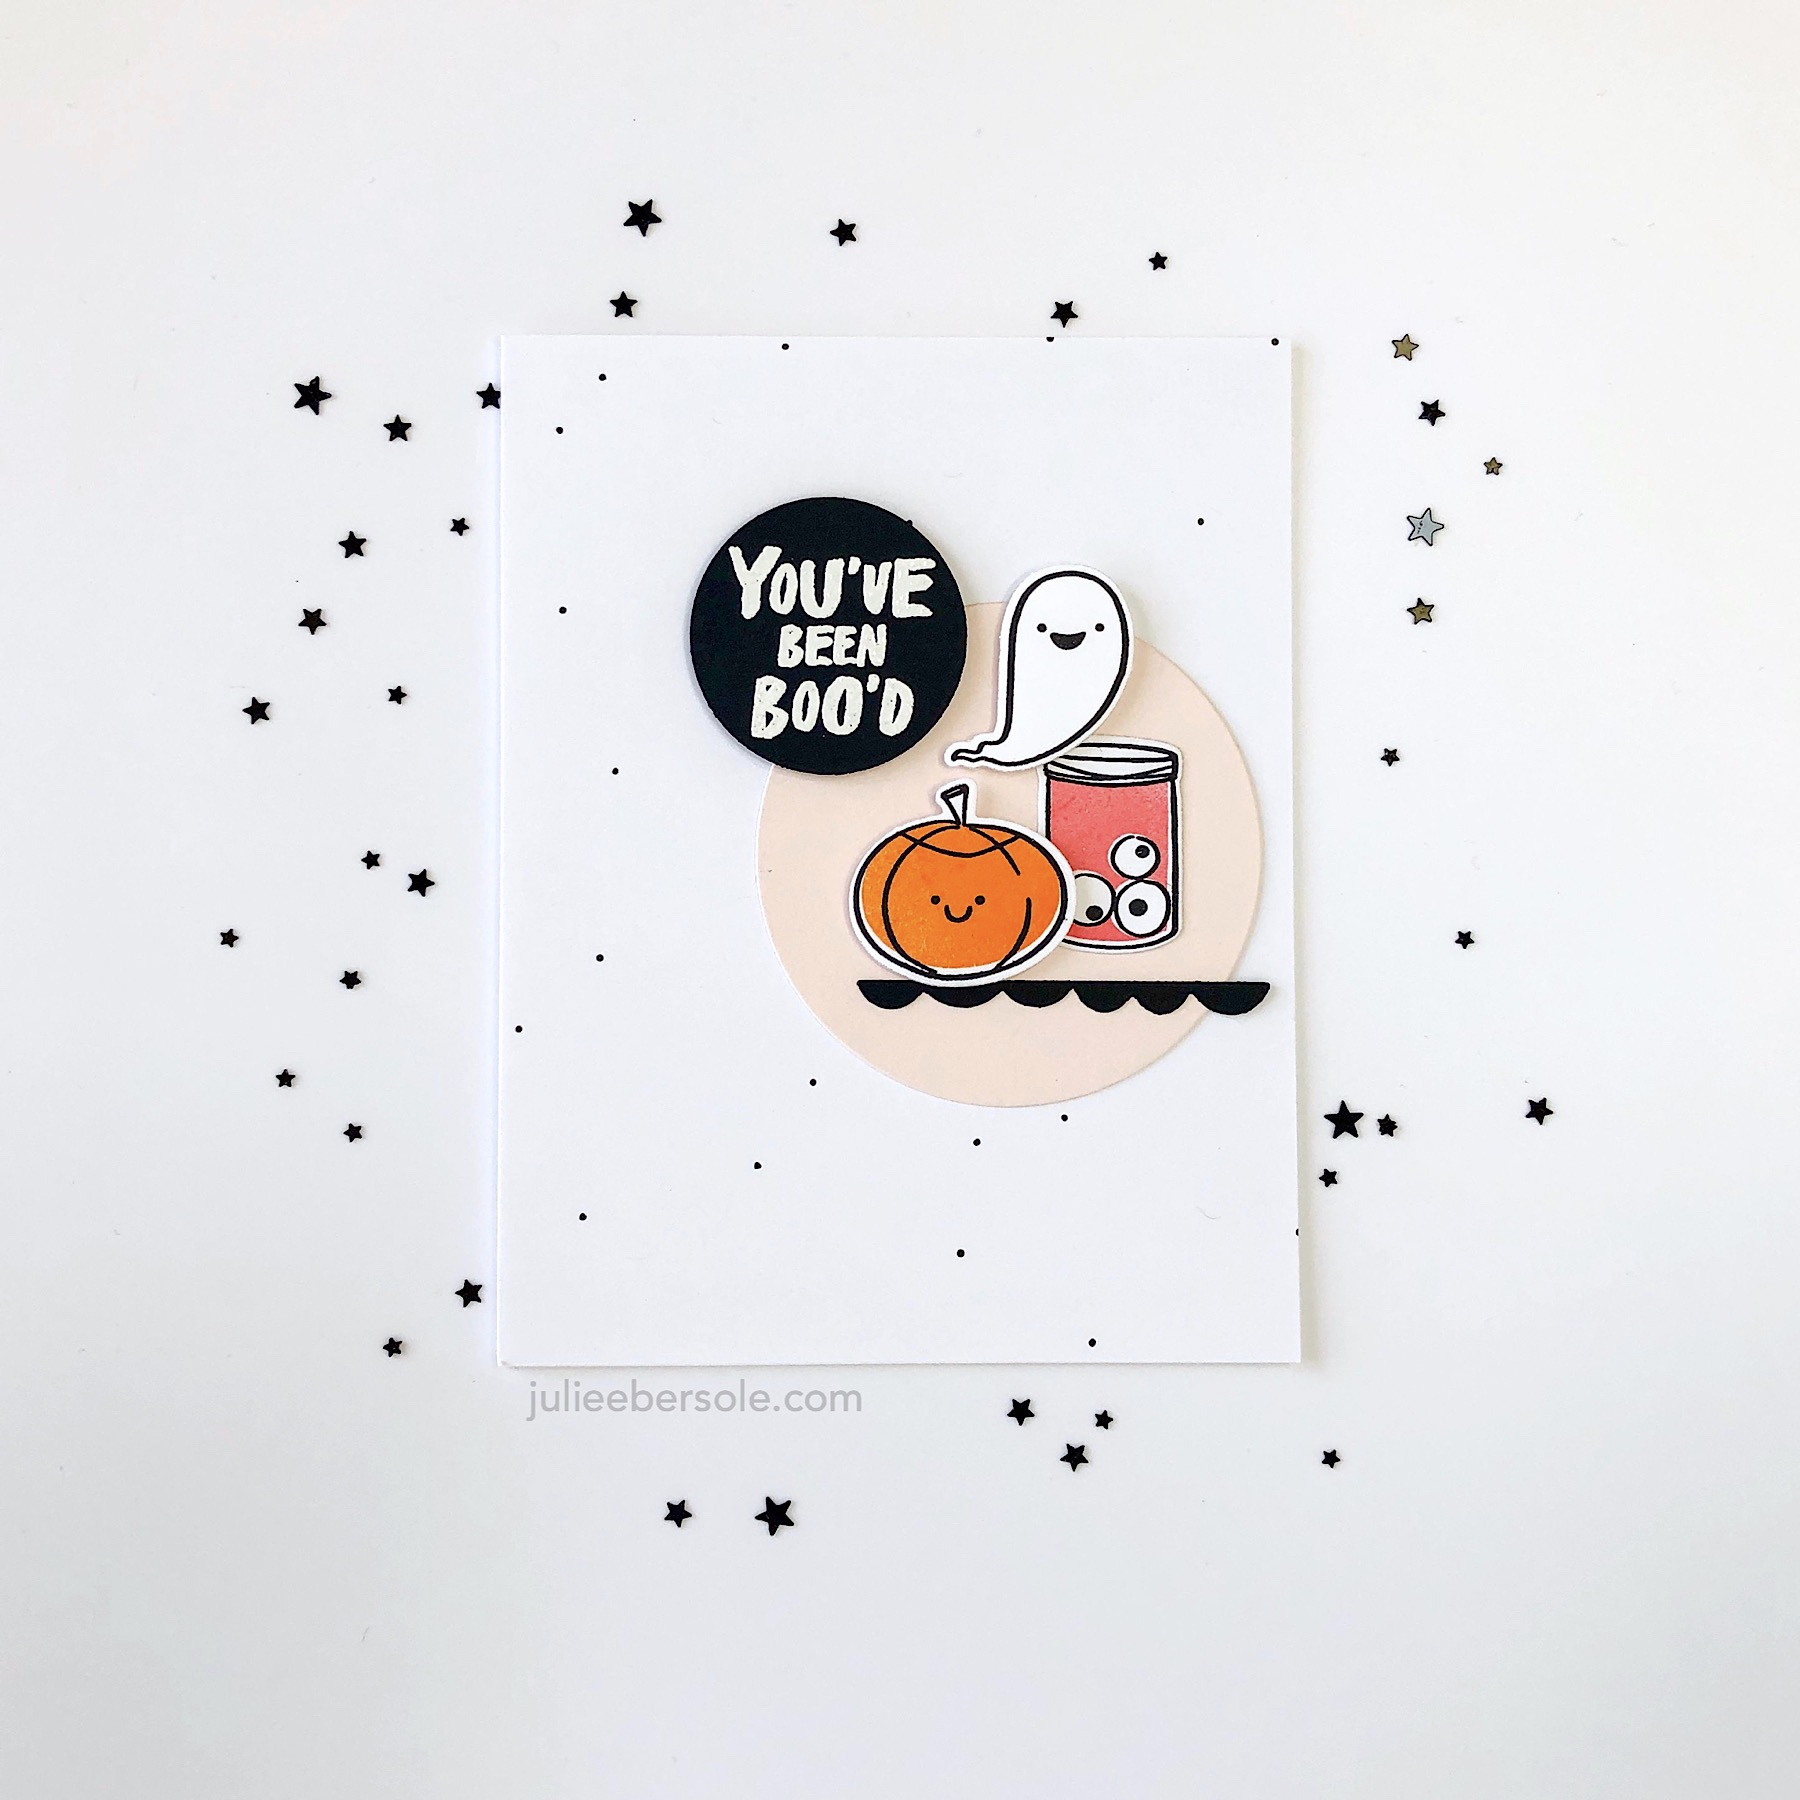 Feat.  Happy Haunting by Julie Ebersole, Essentials By Ellen Clear Stamps  and  The Last Bite by Julie Ebersole, Essentials By Ellen Clear Stamps  (product links listed down at the bottom of the post)